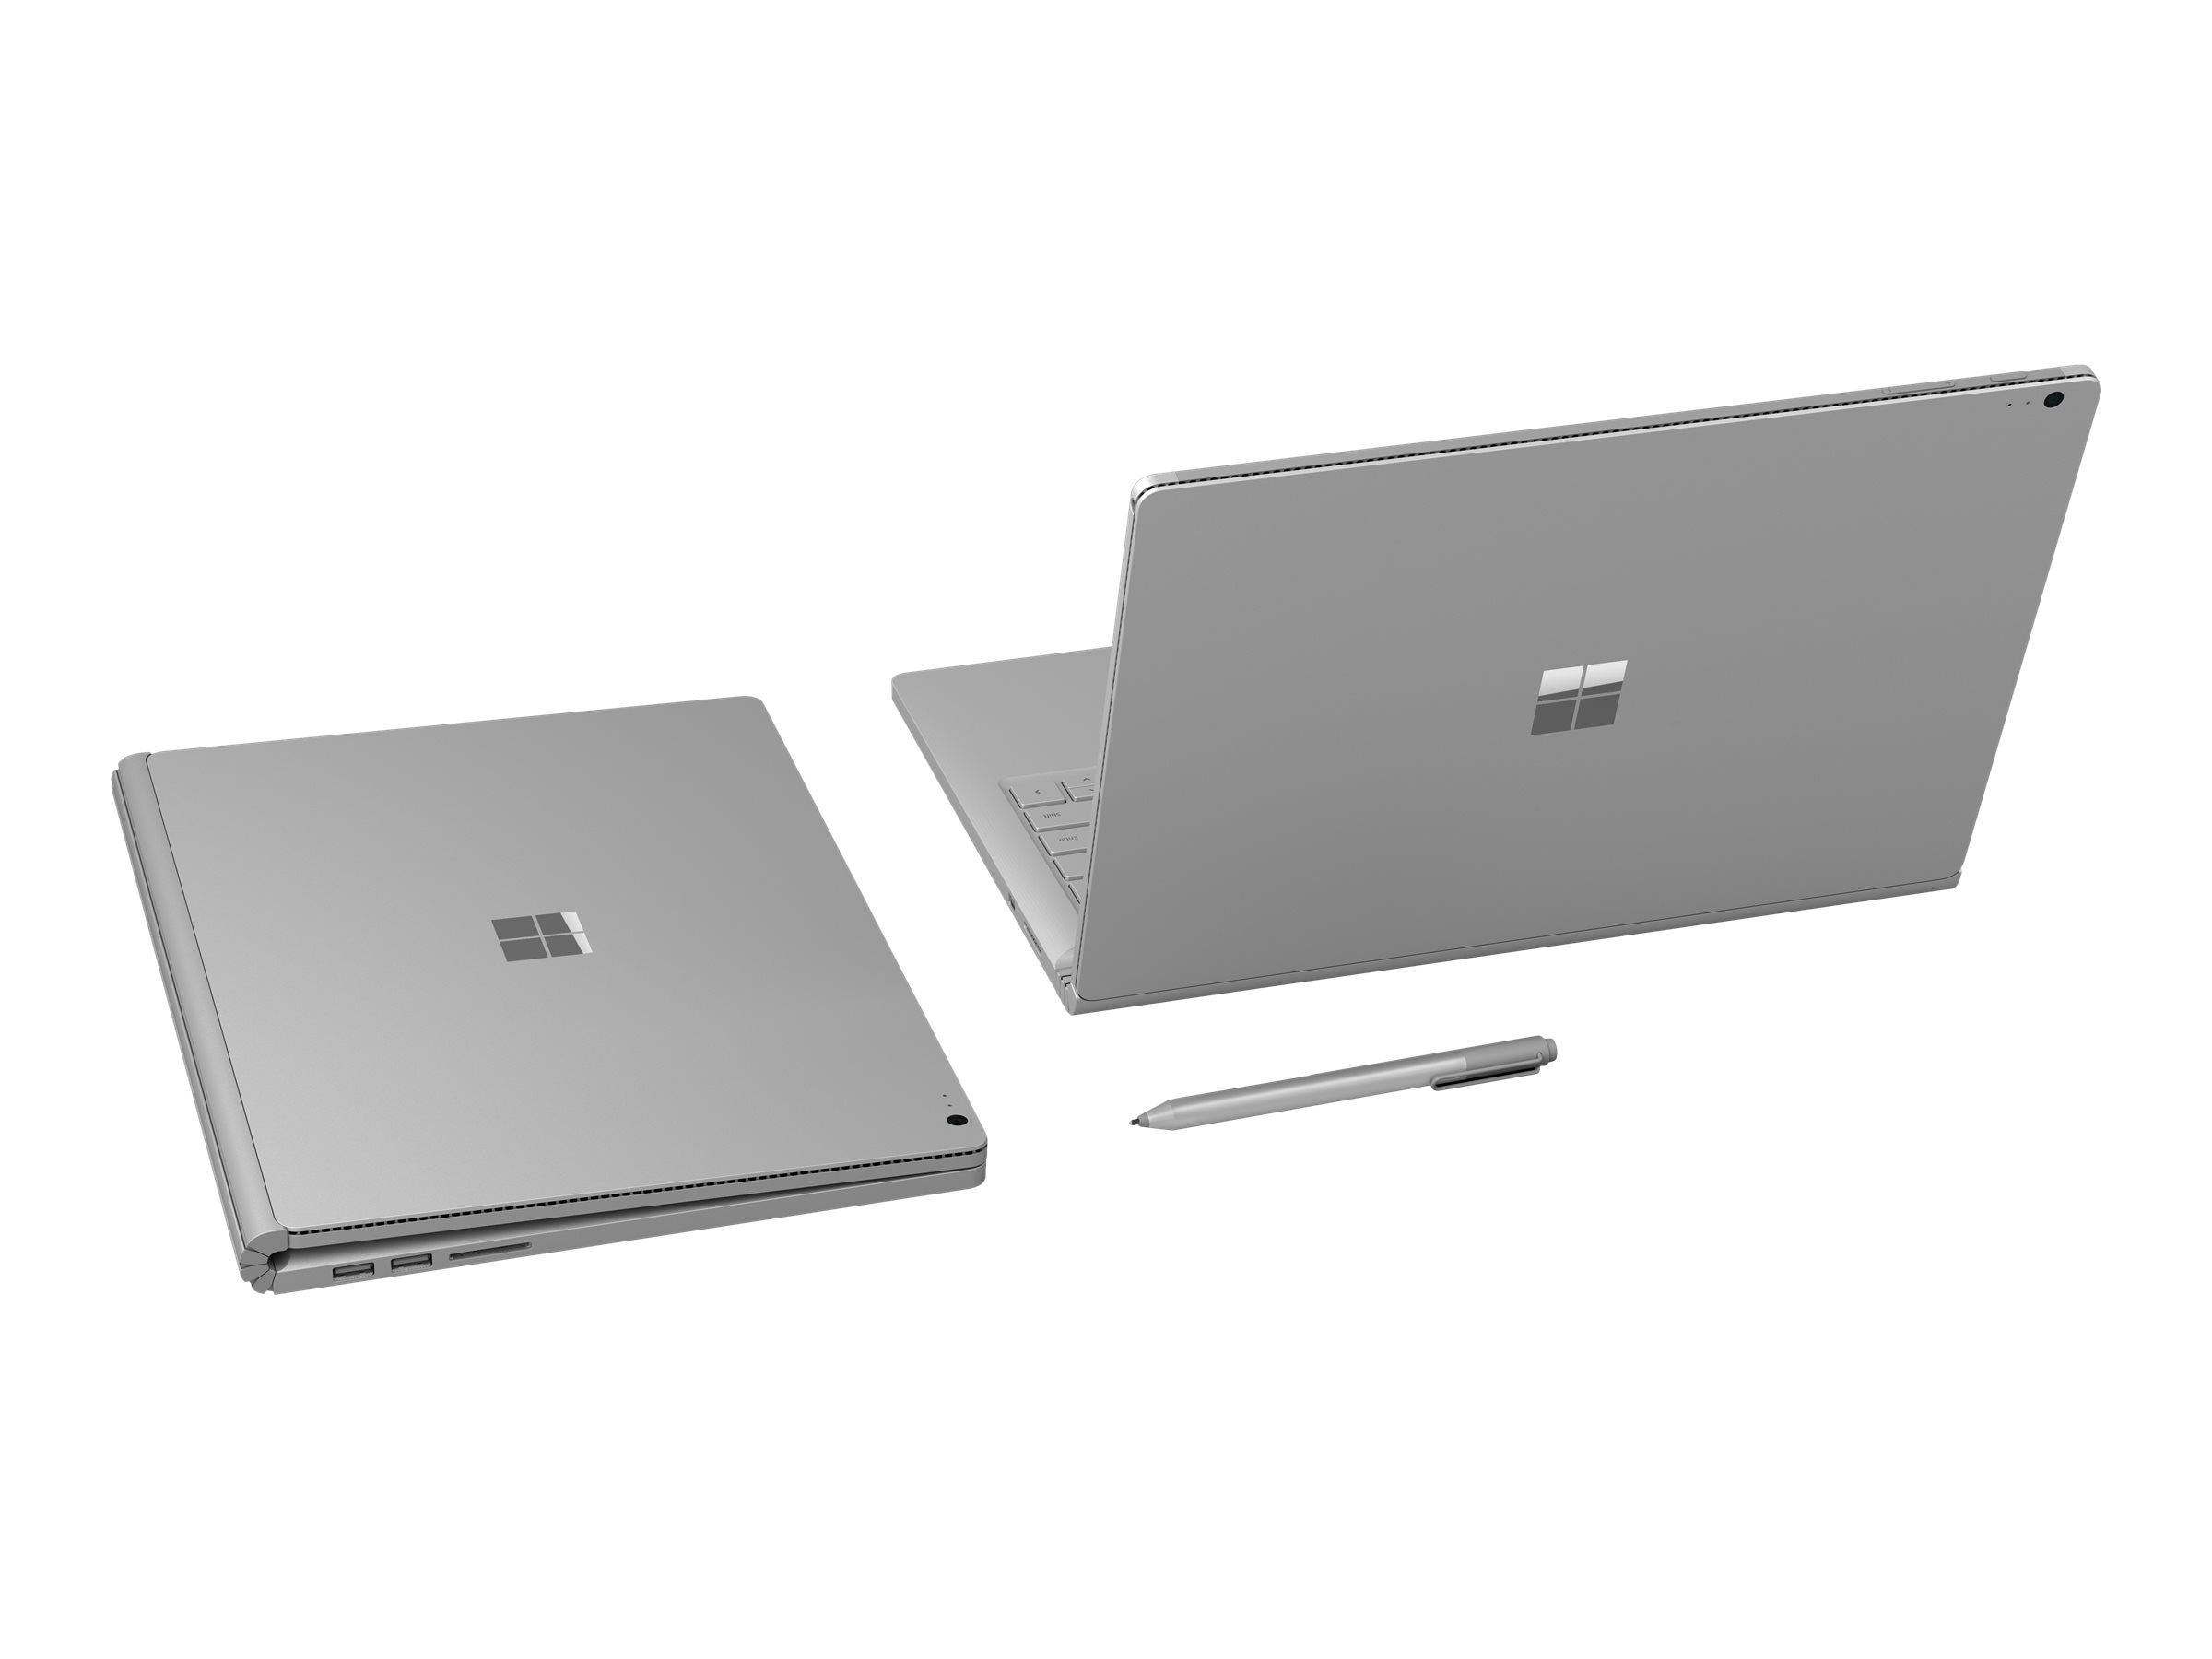 Microsoft Surface Book Core i7 8GB 256GB GTX 965M w Performance Base, 9ER-00001